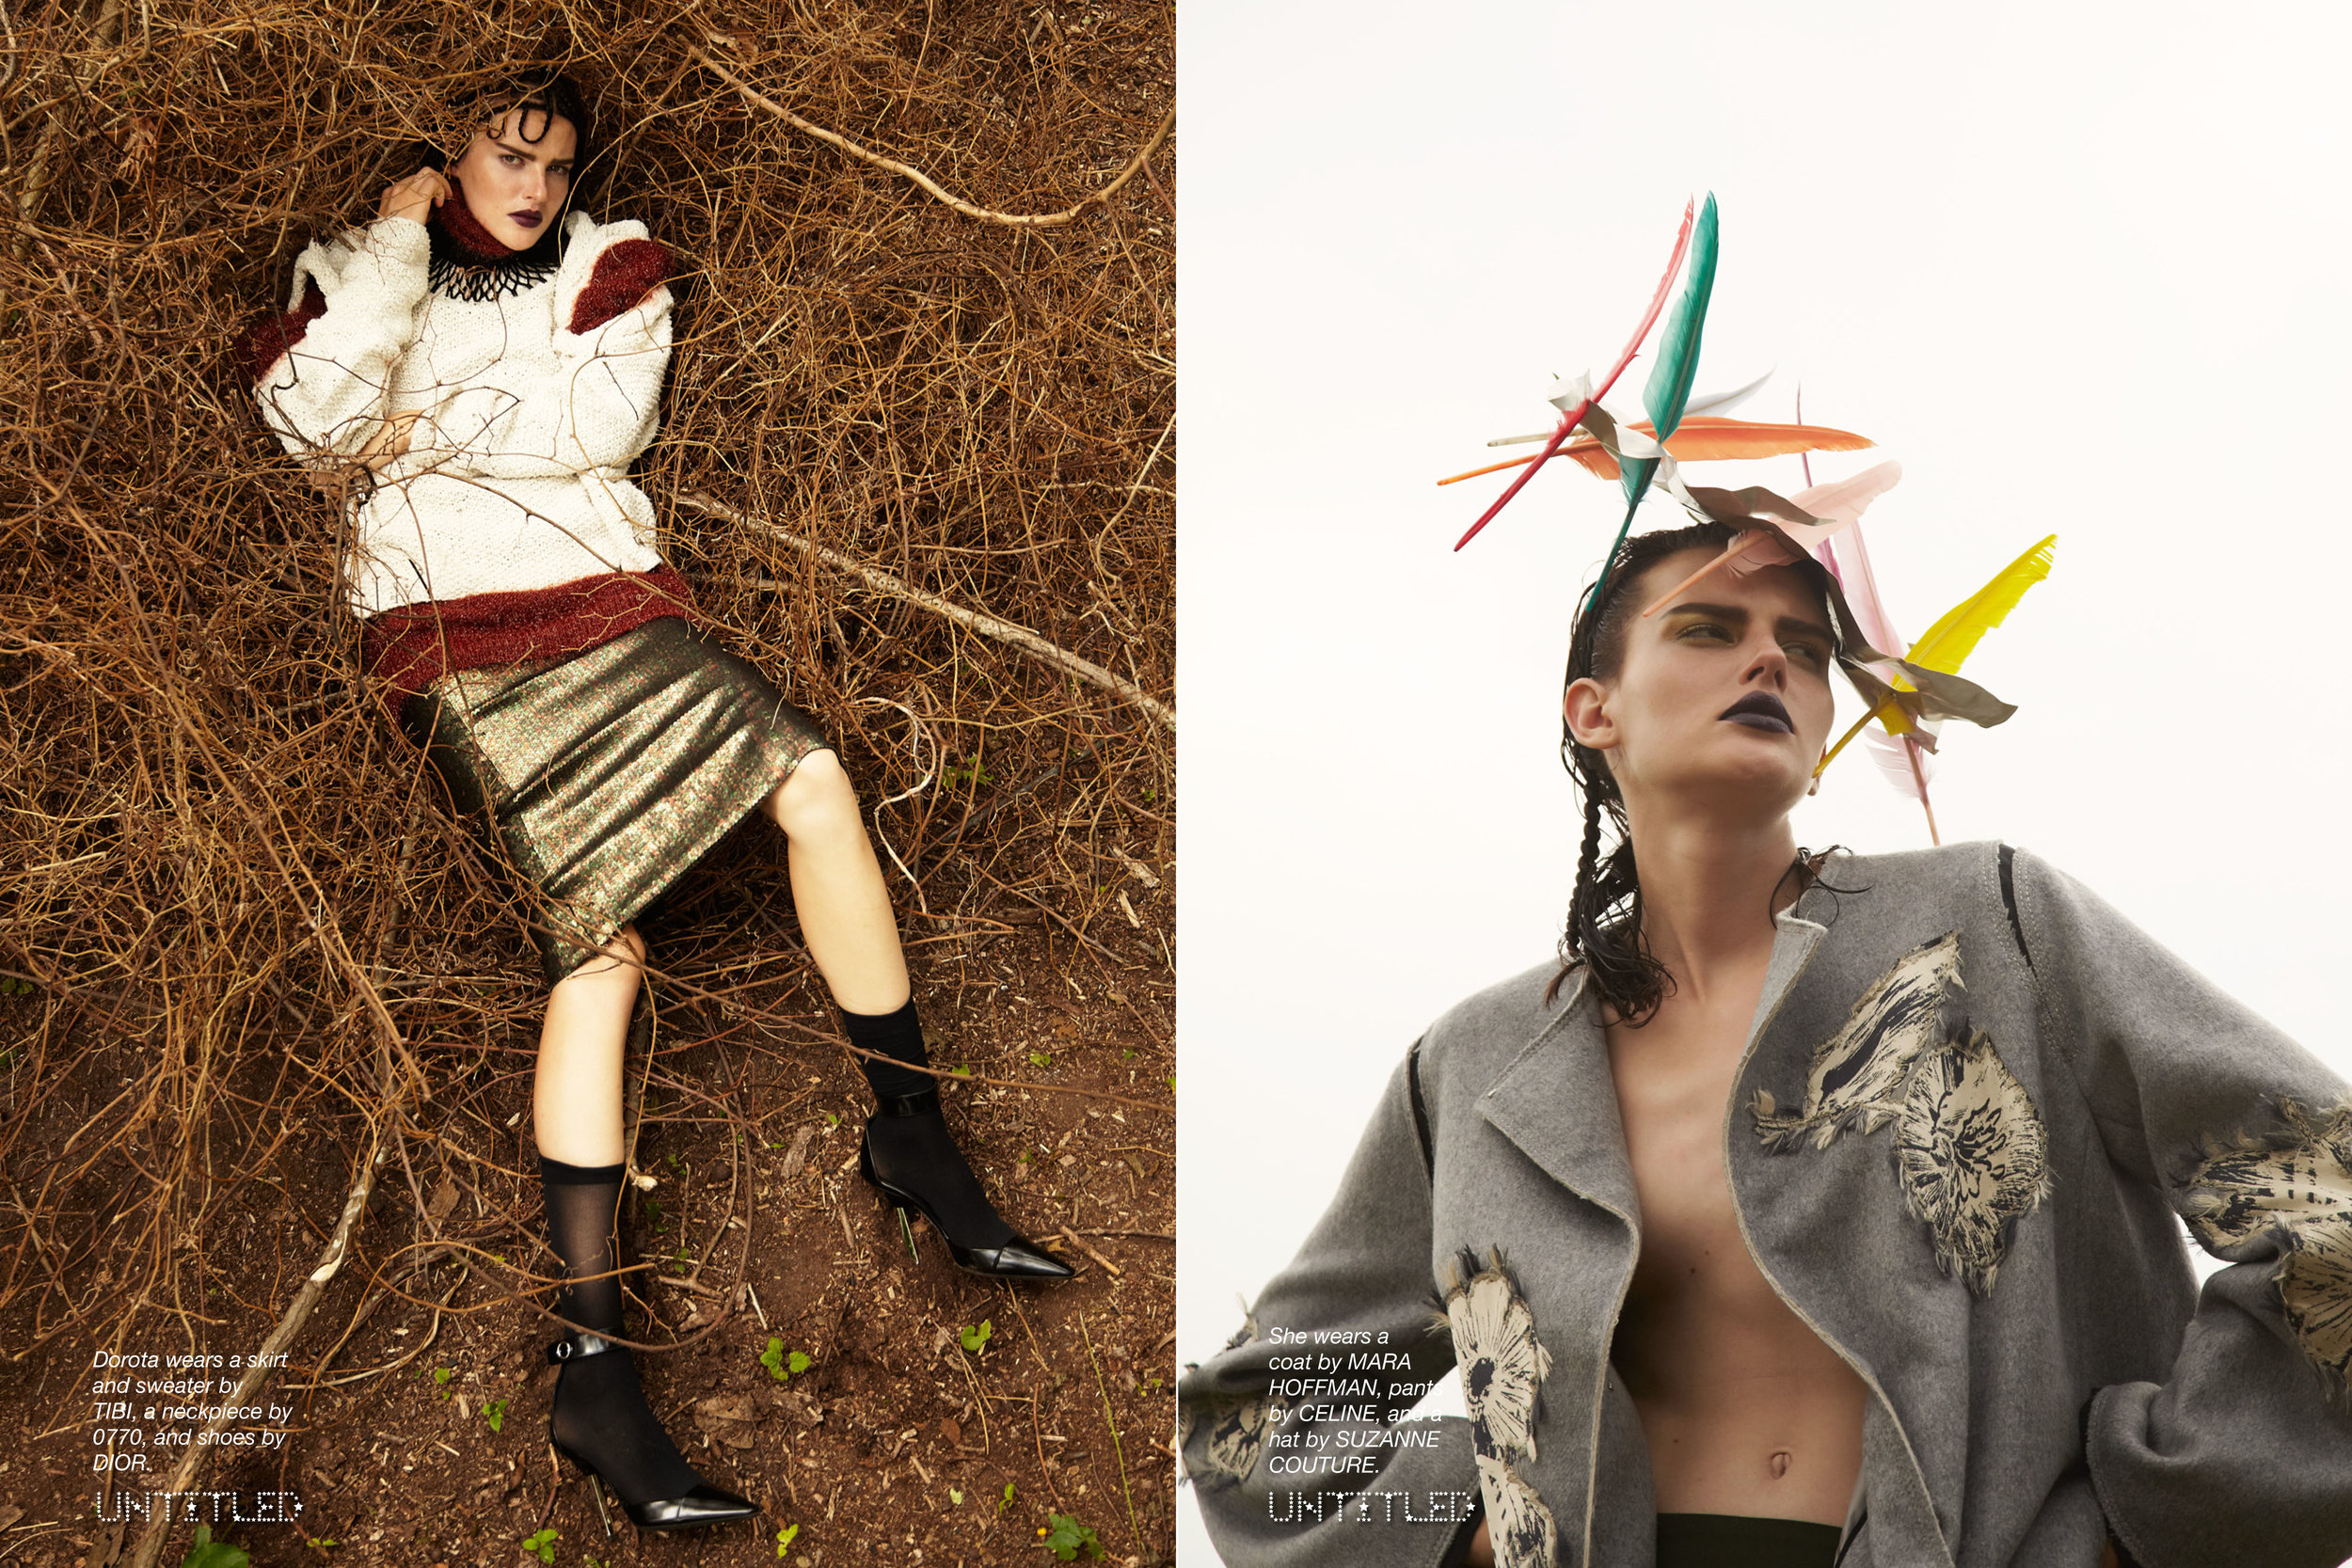 INTO+THE+WOODS+-+Photography+by+Marc+Baptiste+for+The+Untitled+Magazine-7.jpg